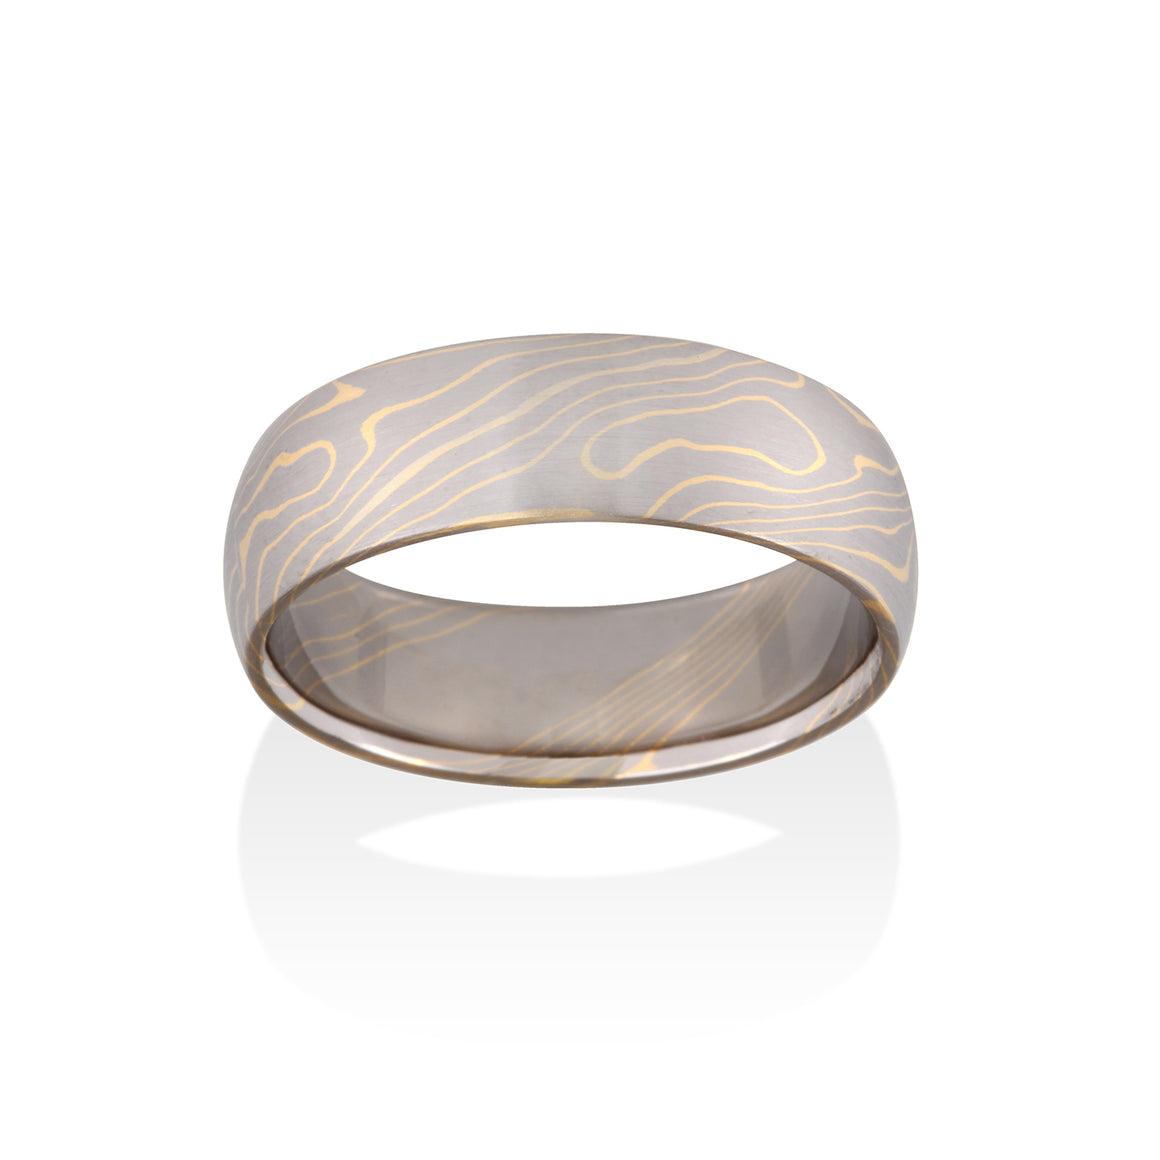 Chris Ploof Aspen 14K Pd White Gold and 18K Yellow Gold Mokume Ring